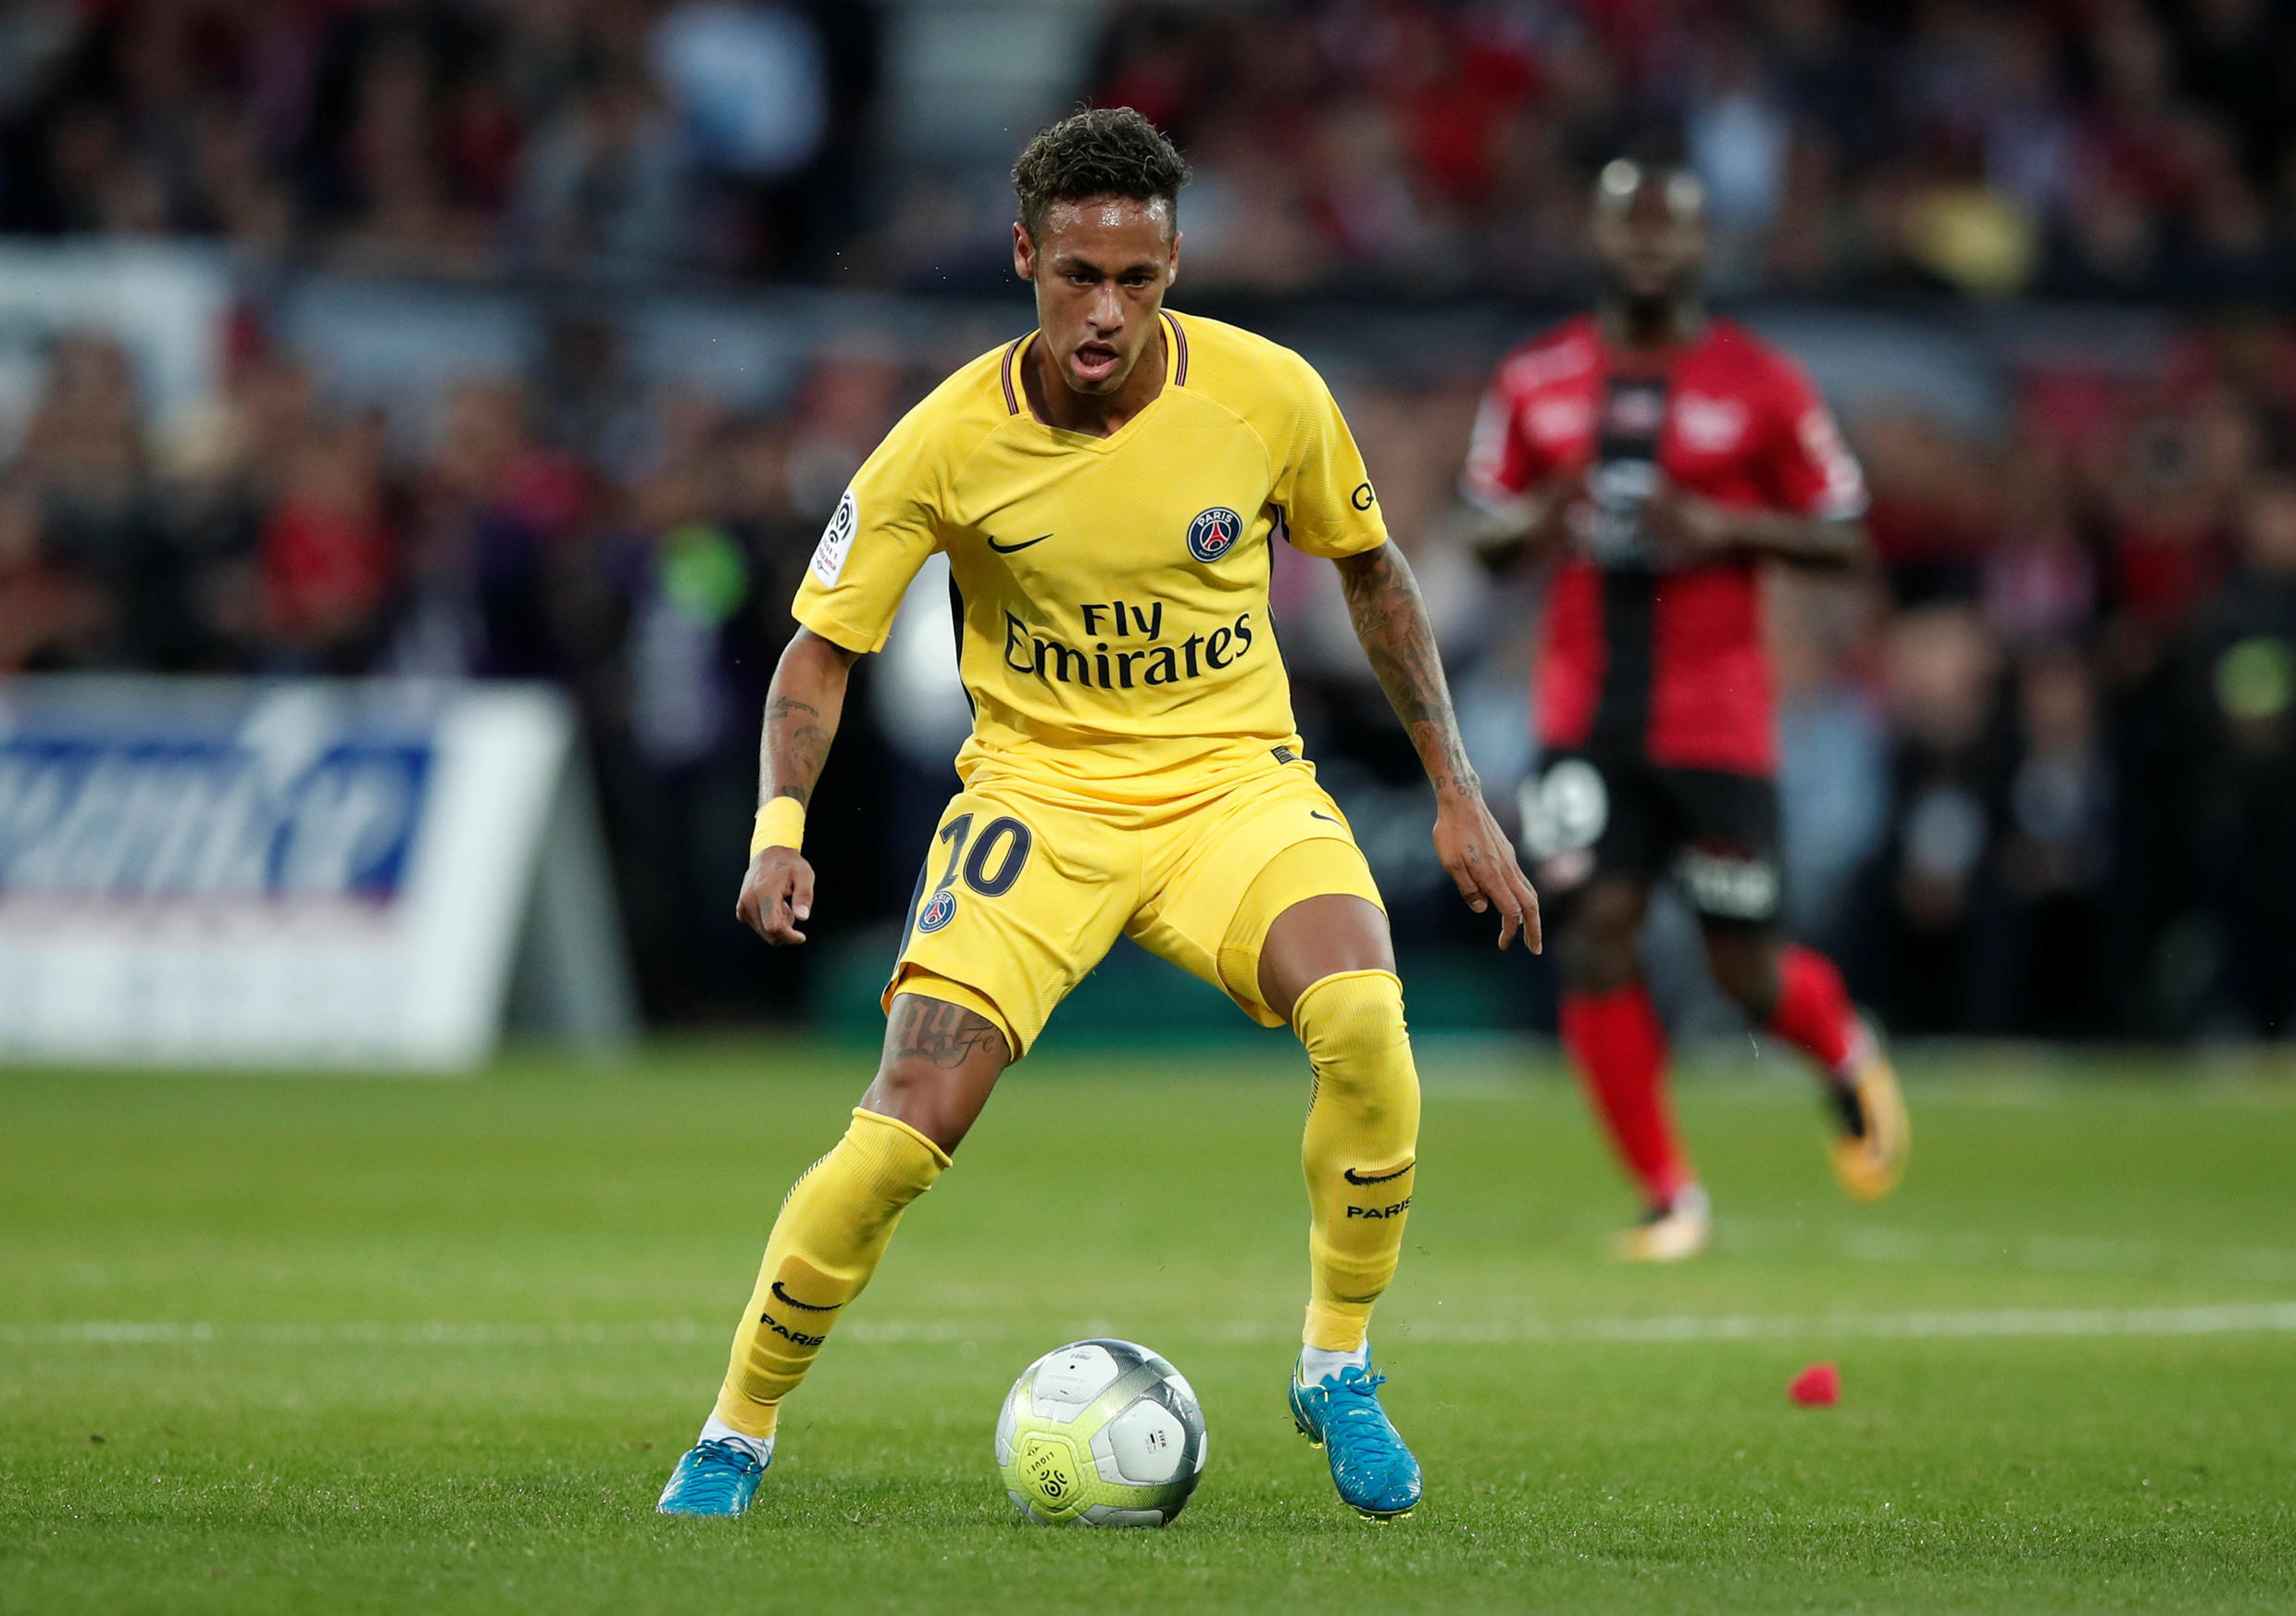 REUTERS/Benoit Tessier | PSG's new signing Neymar in action against Guincamp.